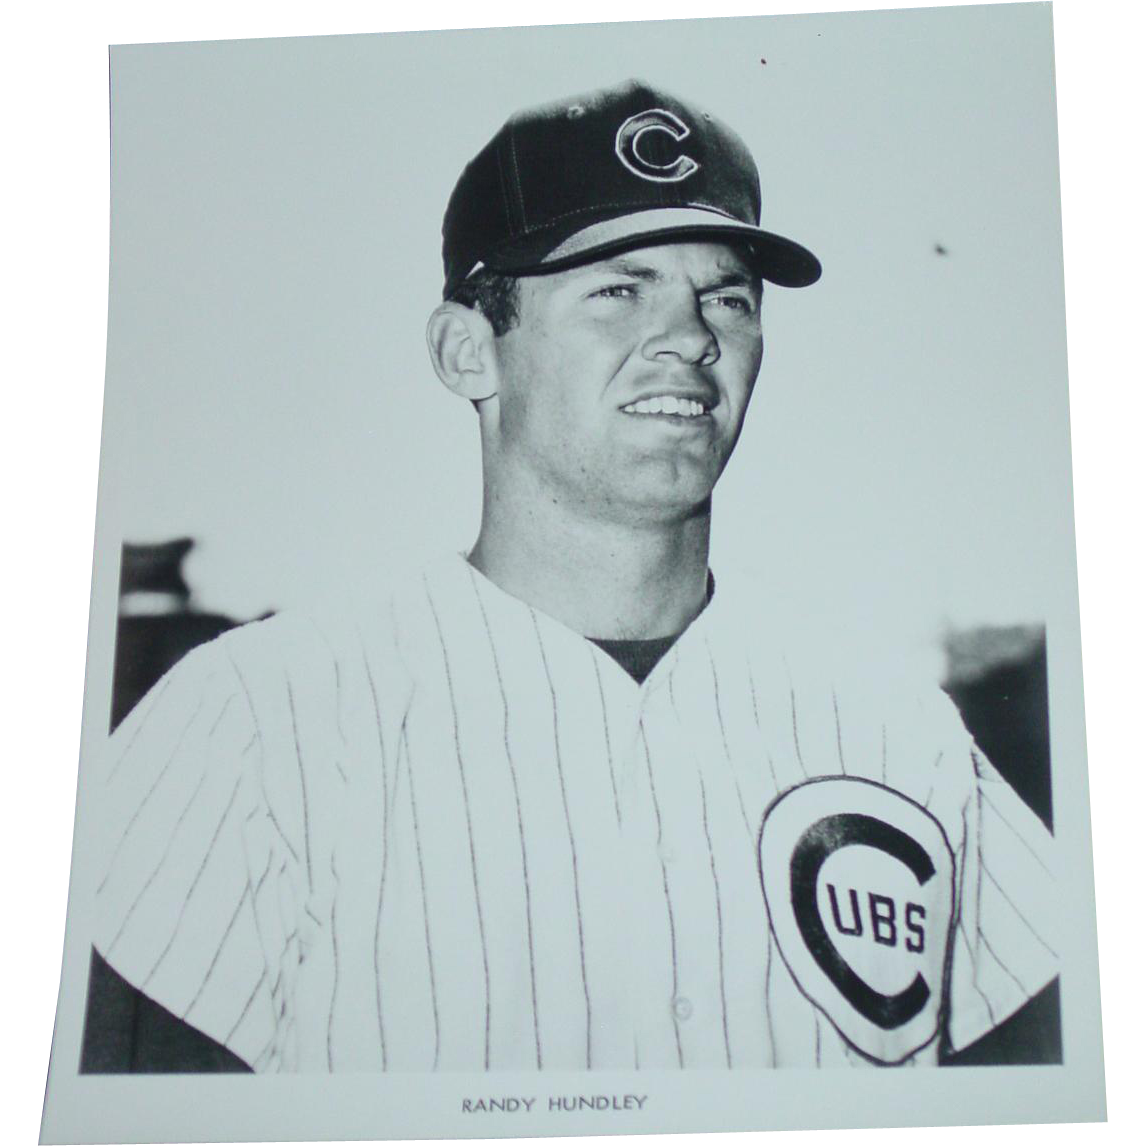 1969 Randy Hundley Original Chicago Cubs Baseball Press Photograph MLB 8 X 10 BW